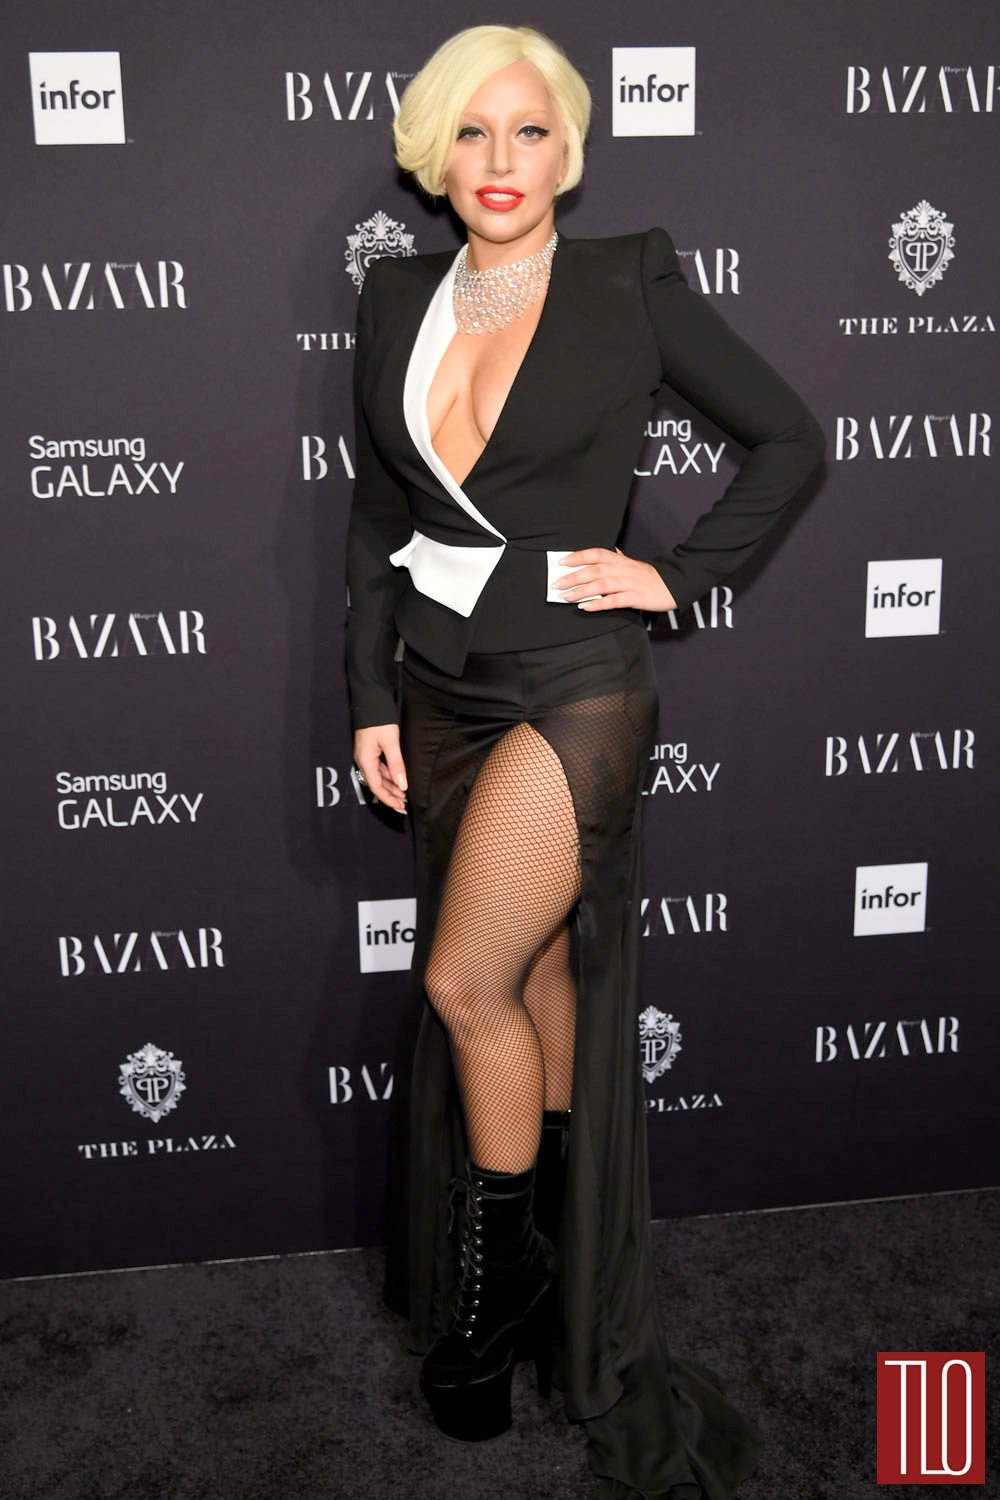 Lady-Gaga-Alexandre-Vauthier-Harpers-Bazaar-Celebration-Red-Carpet-Tom-Lorenzo-Site-TLO (1)